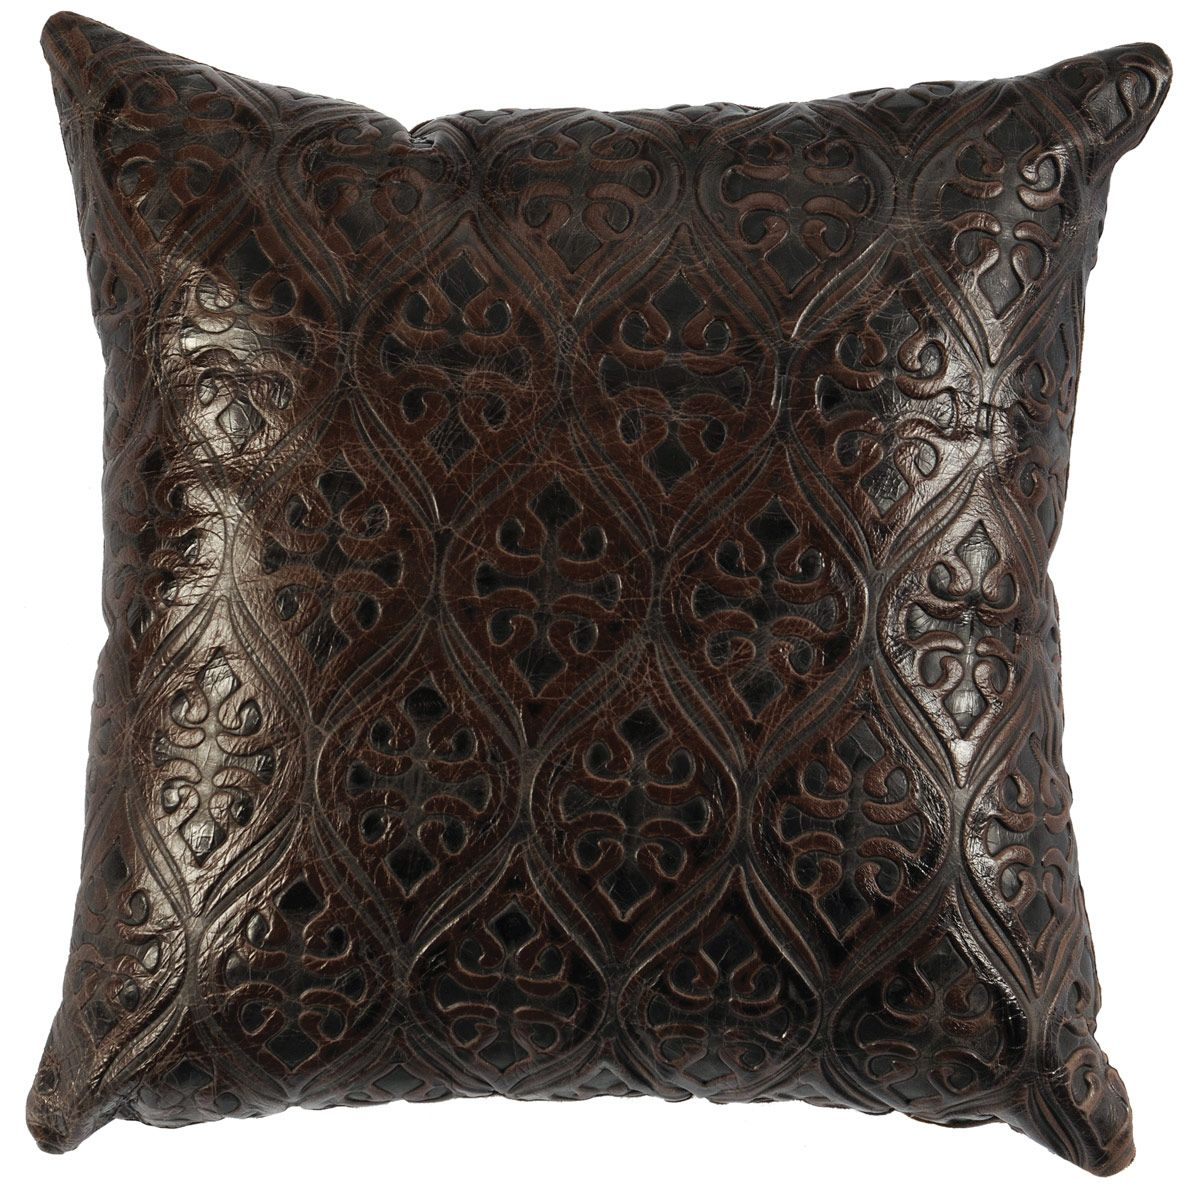 Gateway Embossed Leather Pillow with Fabric Back